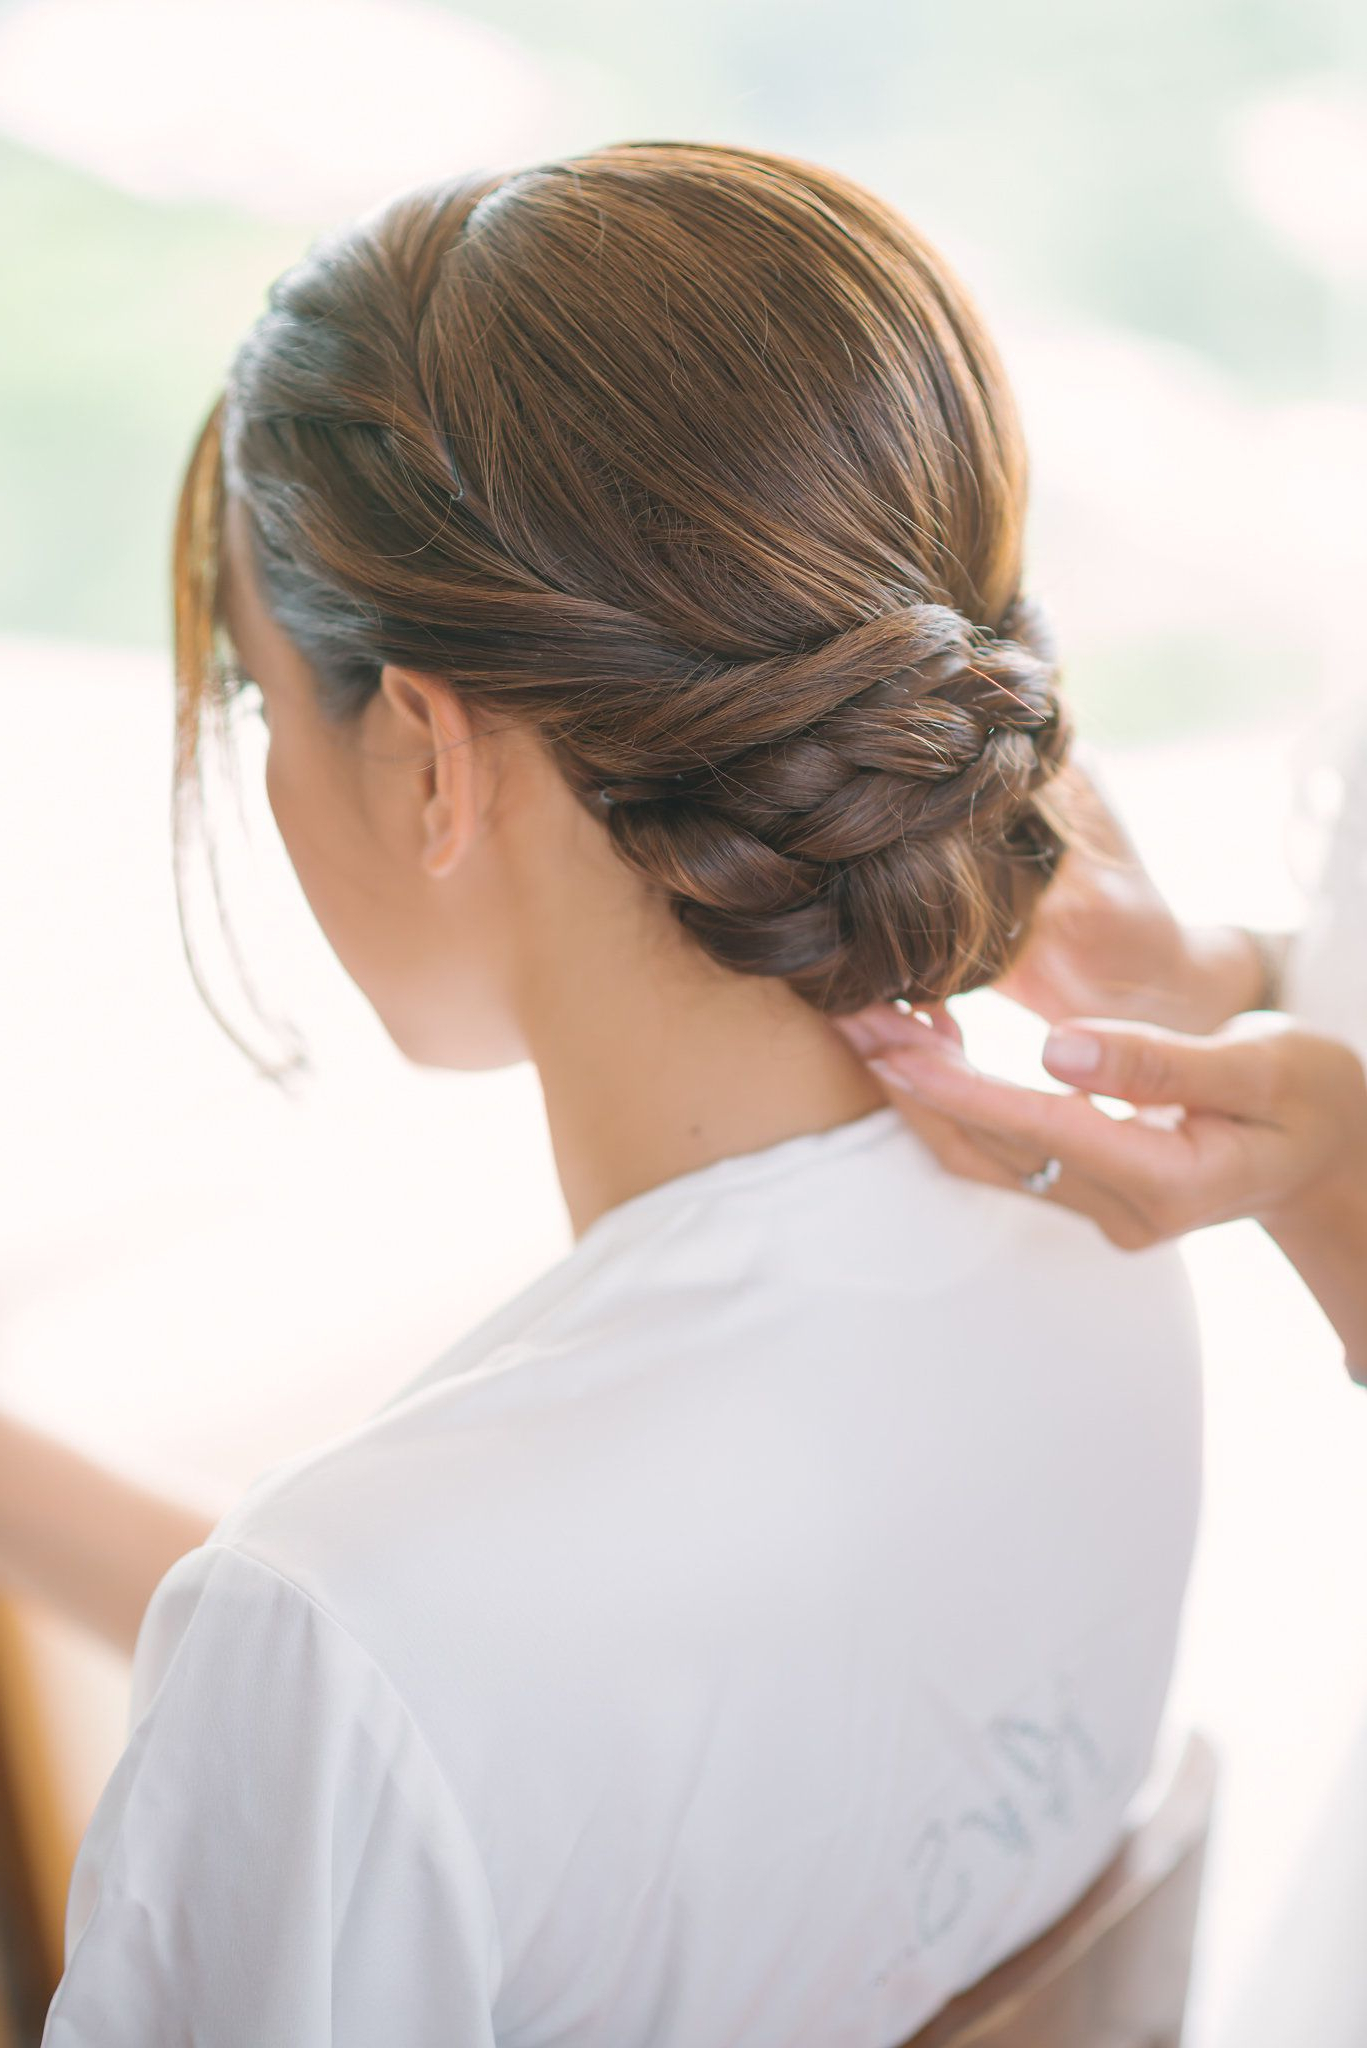 Most Recently Released Undone Low Bun Bridal Hairstyles With Floral Headband Regarding Were You Aware That Happily Ever After Starts On A Beach In Thailand (View 10 of 20)